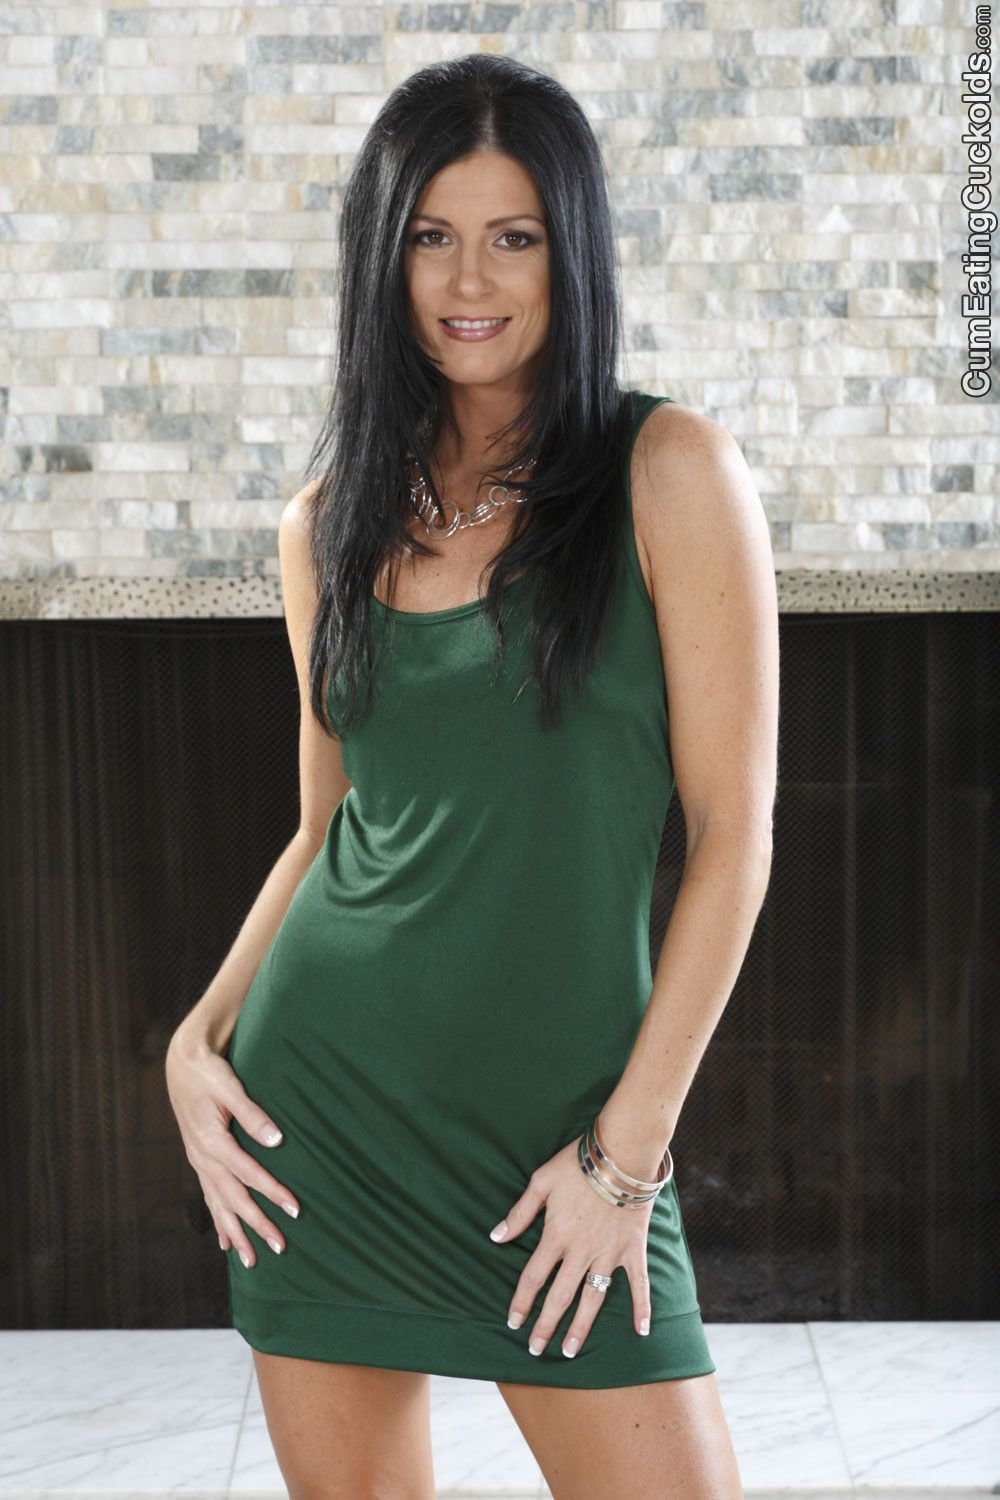 India Summer Nude Photos 20